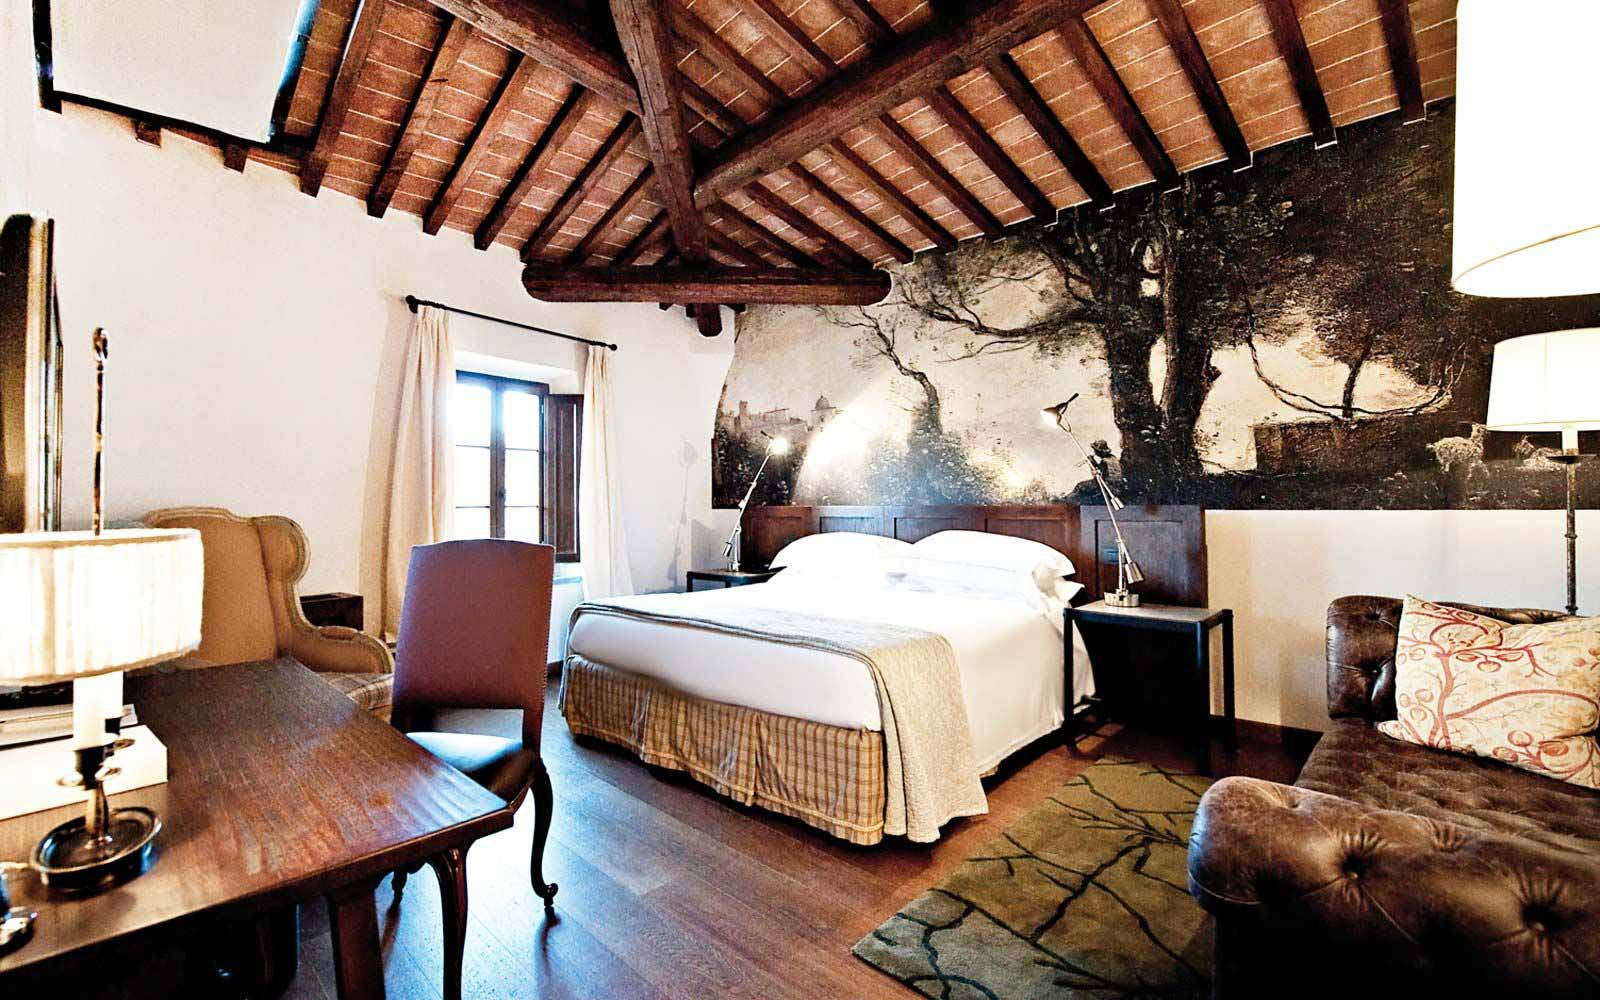 Deluxe room at Castel Monastero Tuscan Resort & Spa